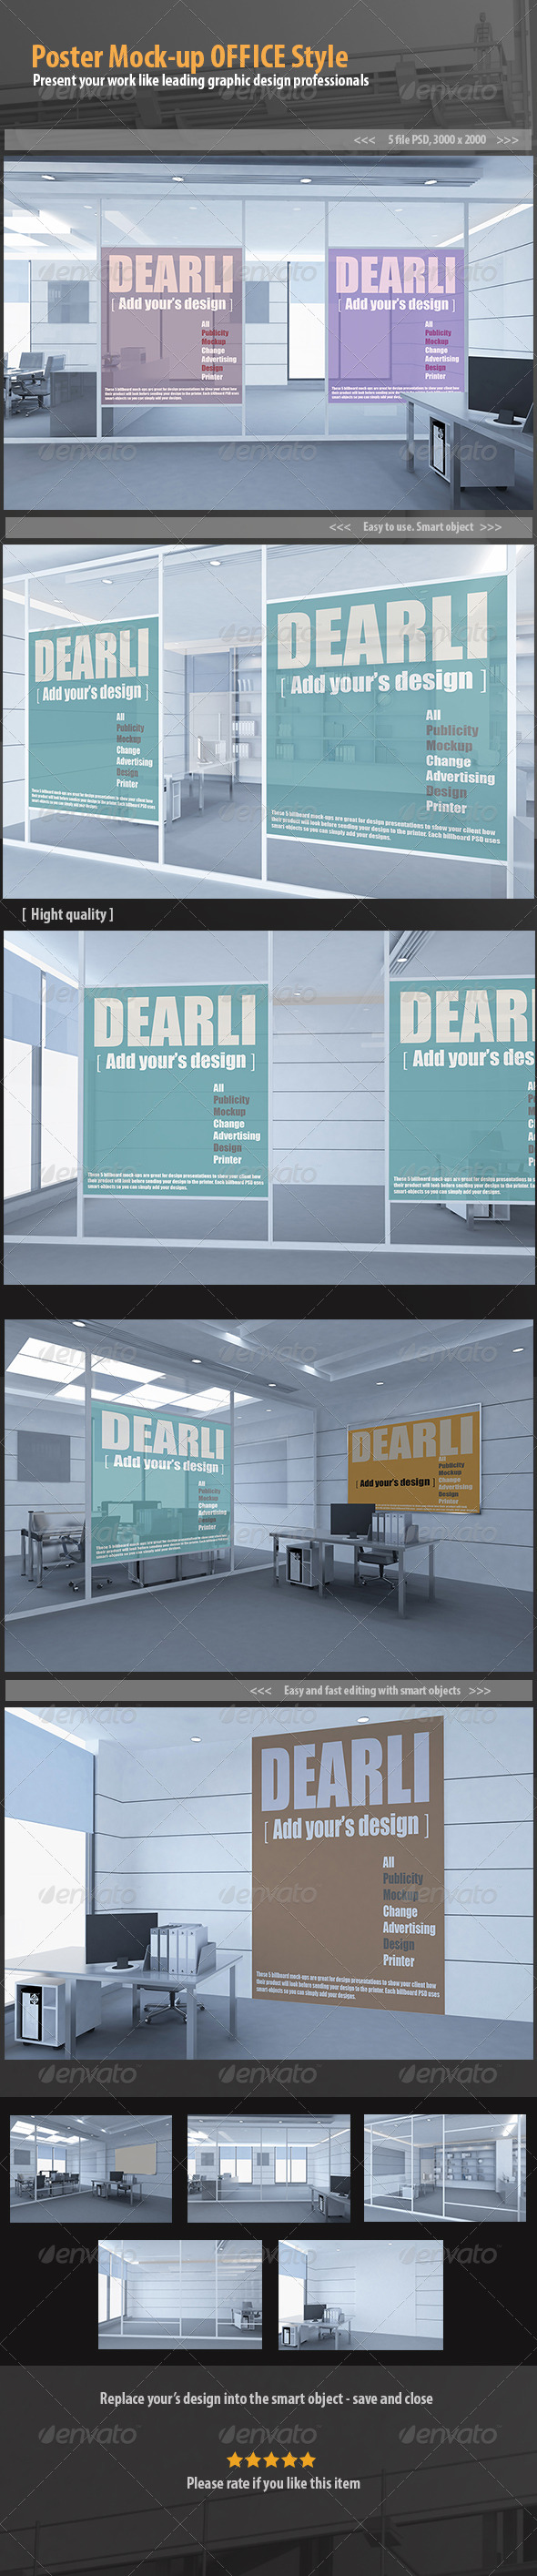 Poster Mock-up OFFICE Style - Posters Print